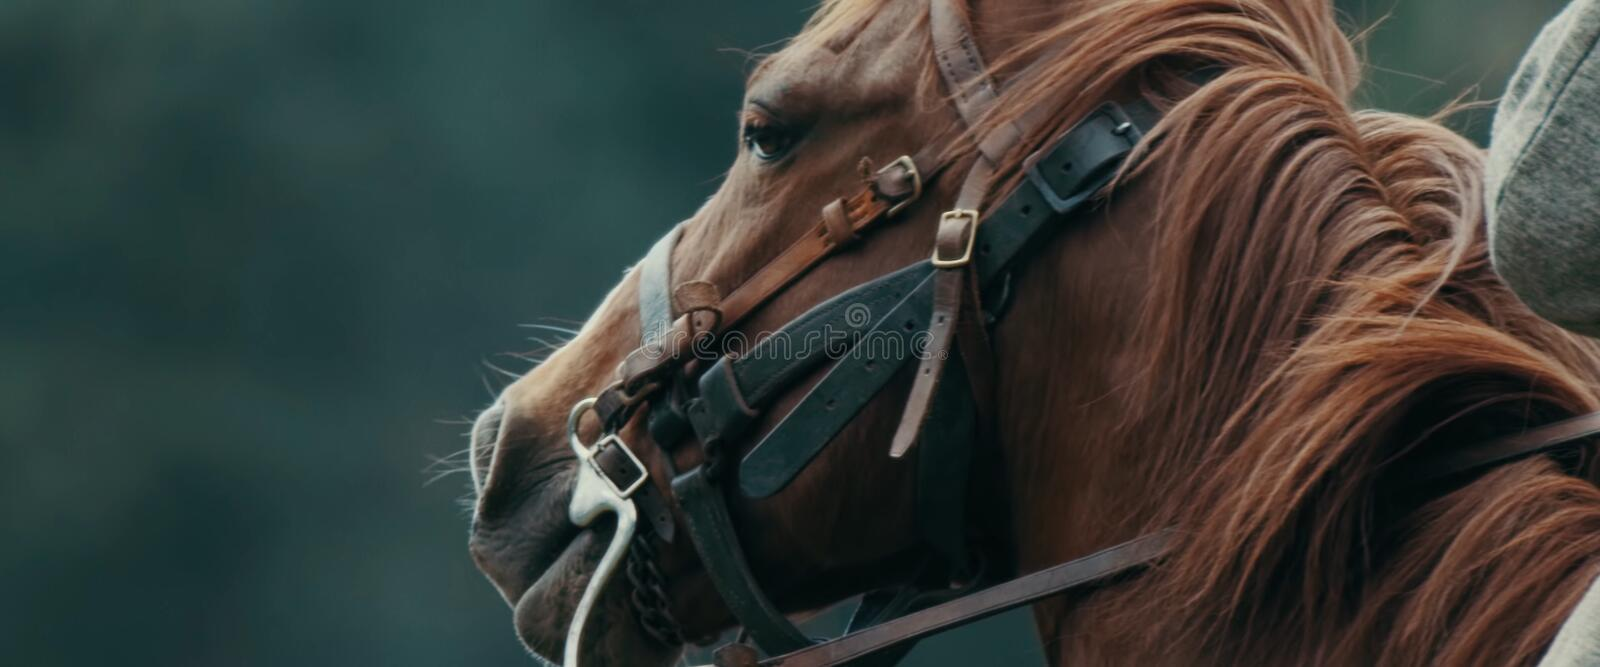 Horse head portrait on natural background stock photos